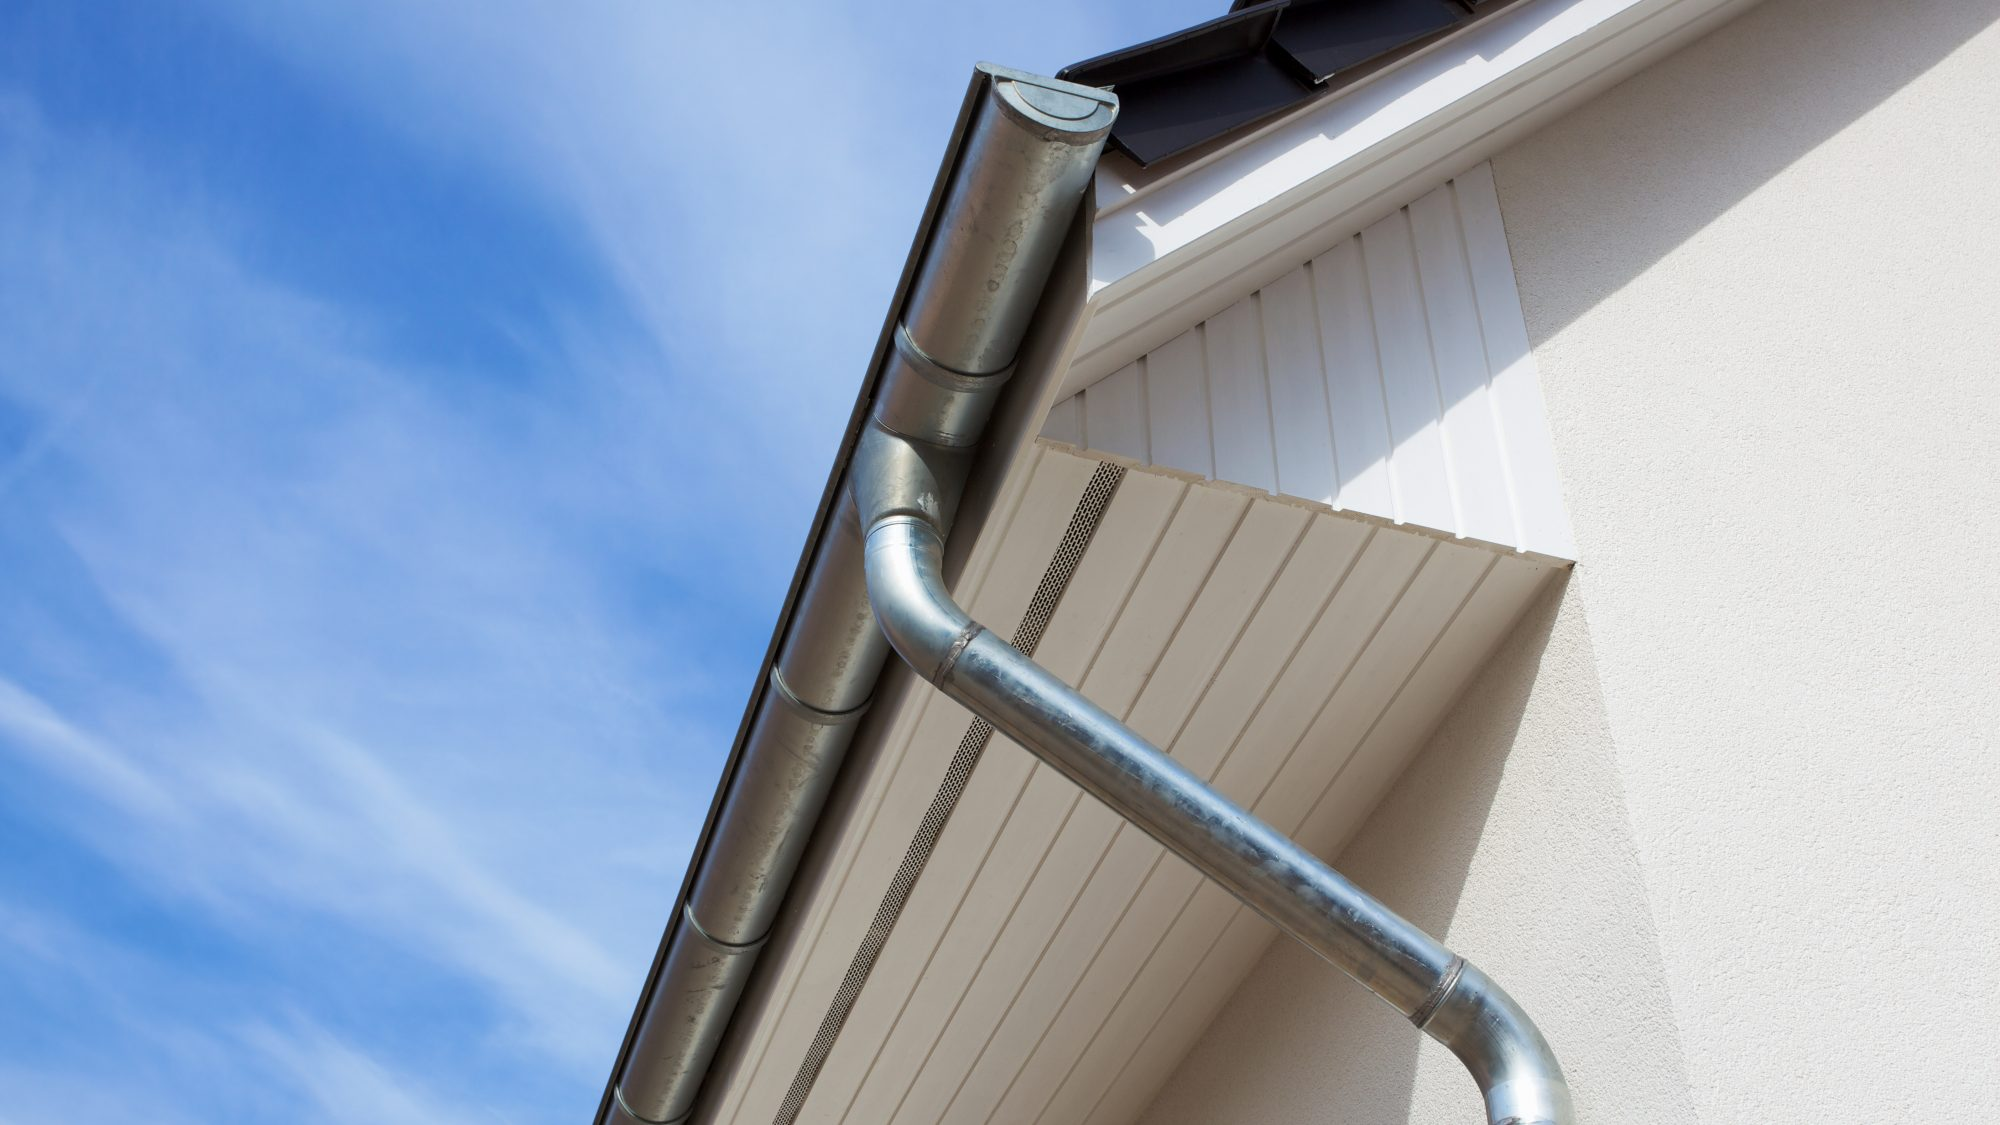 How to clean gutters - supplies, steps, and more